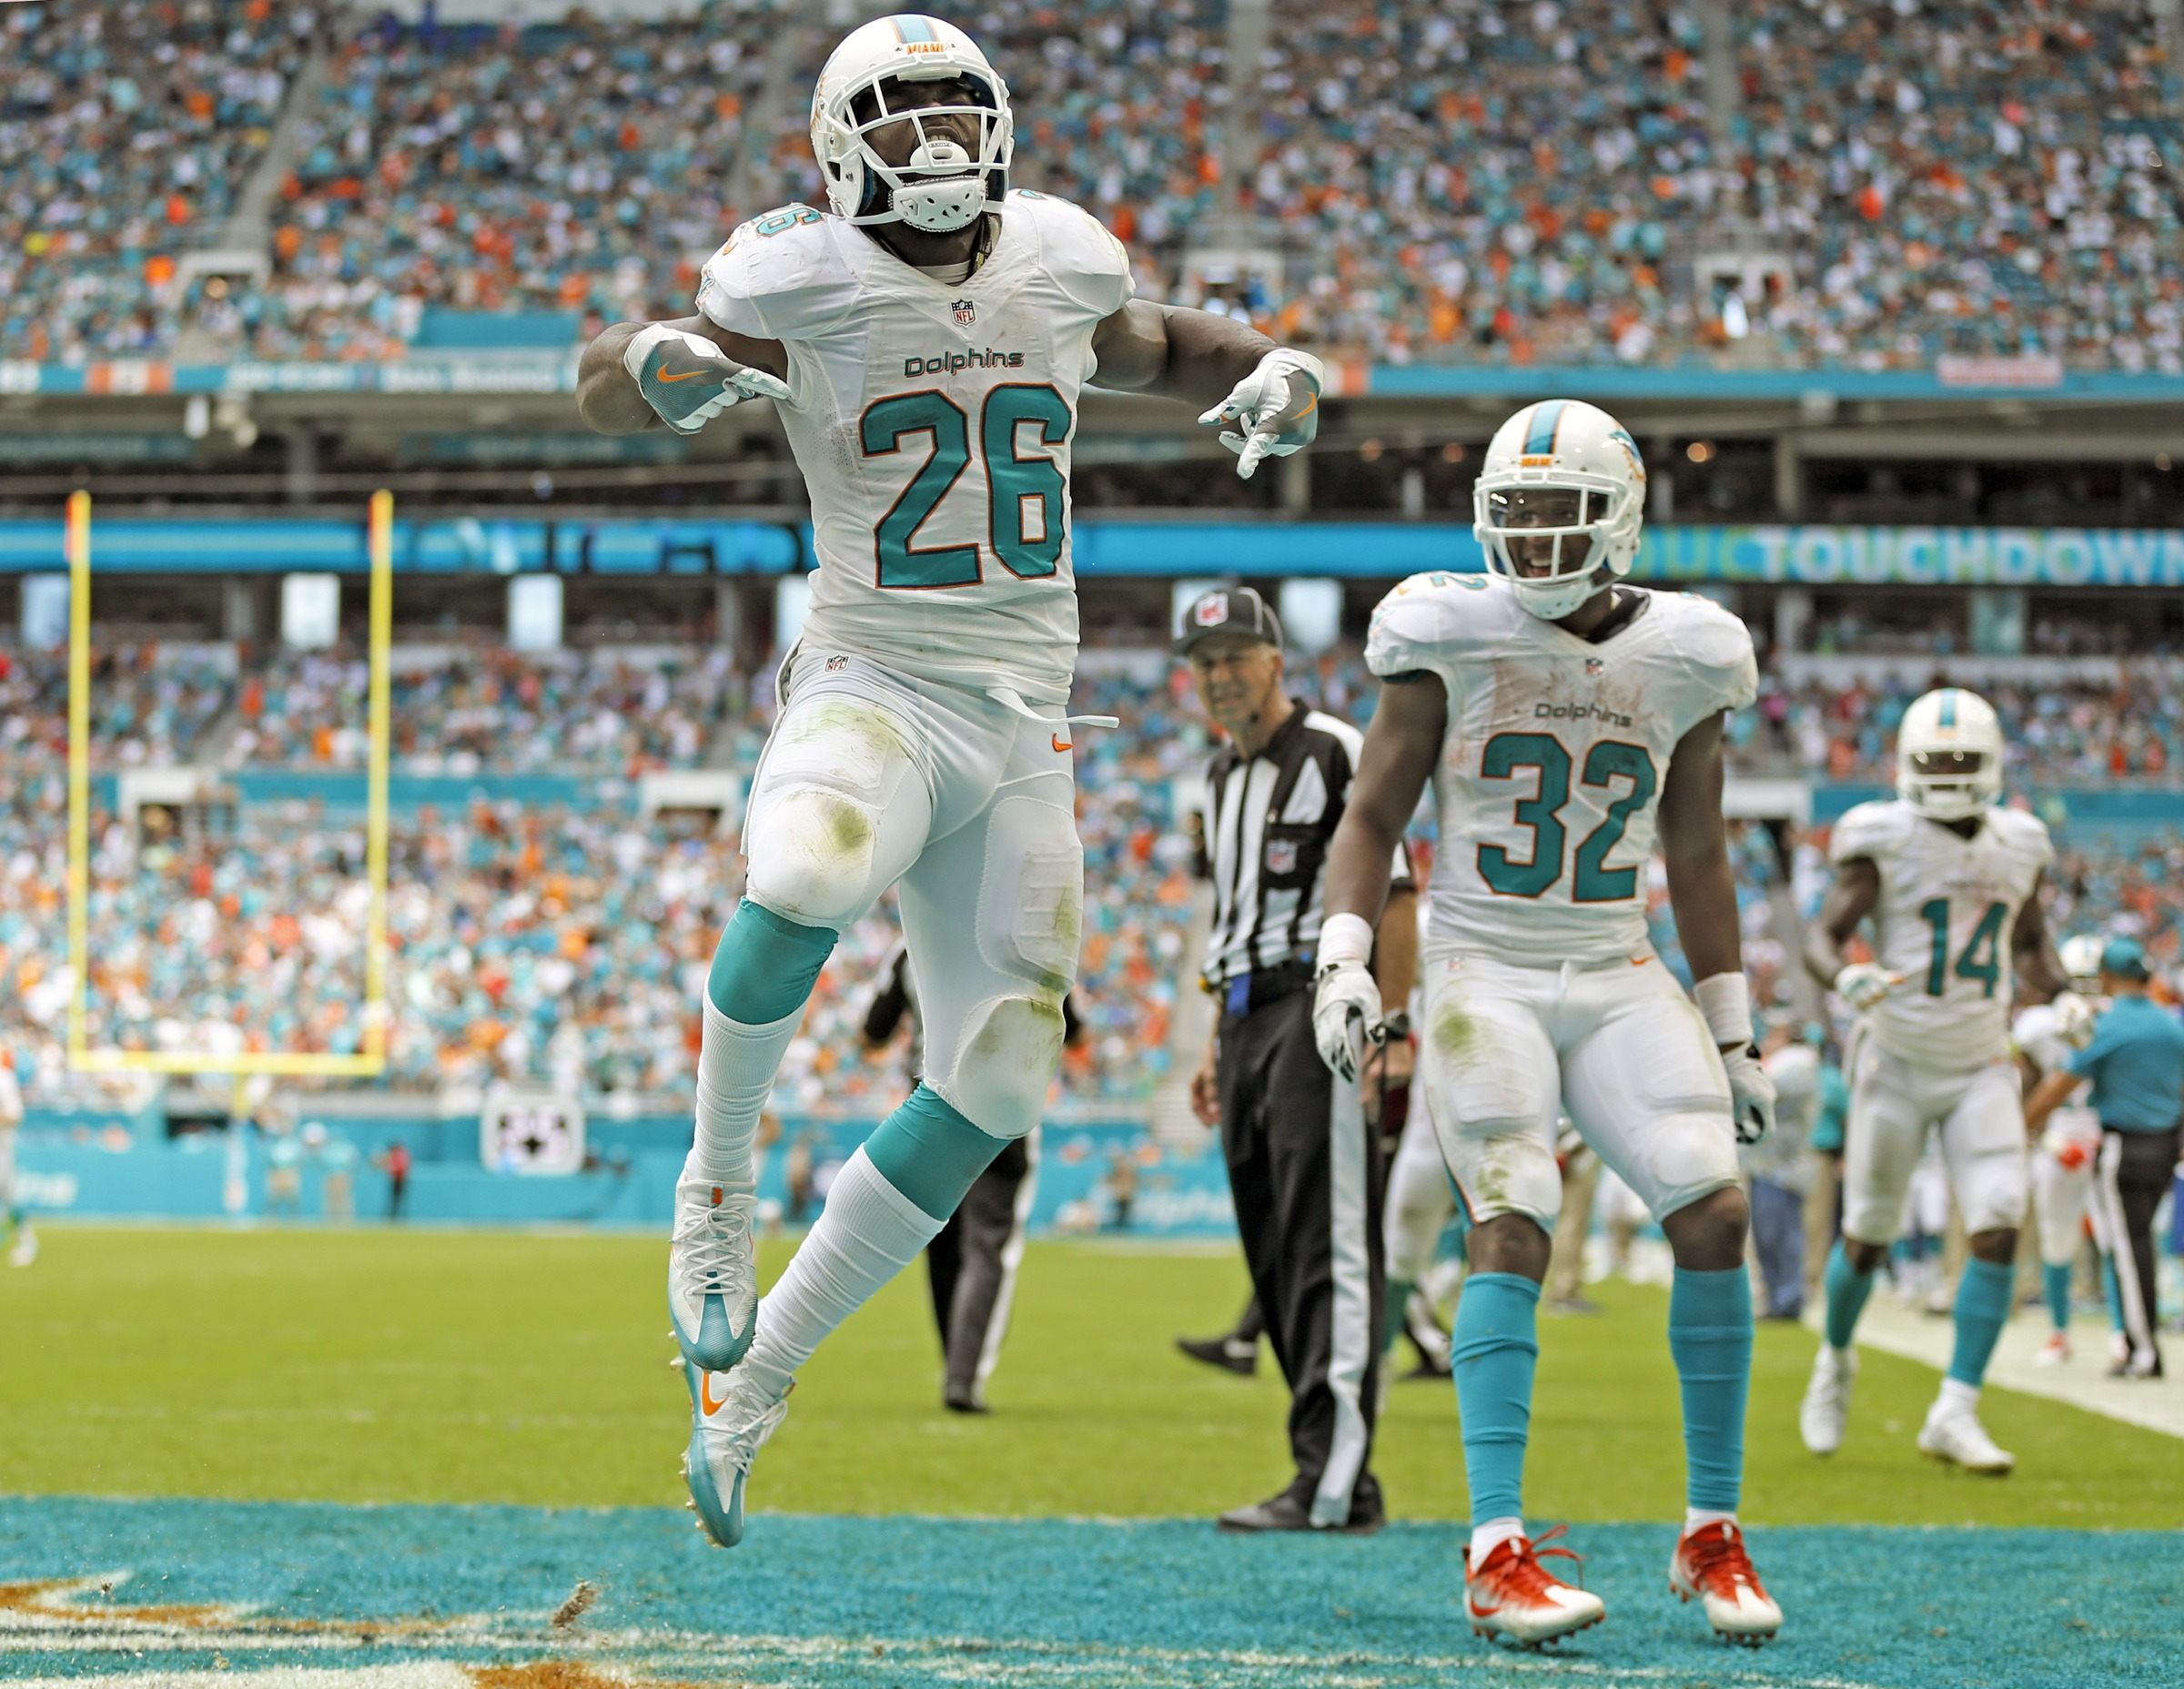 Miami Dolphins running back Damien Williams (26) celebrates in the end zone after scoring in the fourth quarter as the Miami Dolphins beat the Cleveland Browns in the home opener at refurbished Hard Rock Stadium on Sunday, Sept. 25, 2016. (Al Diaz/Miami H